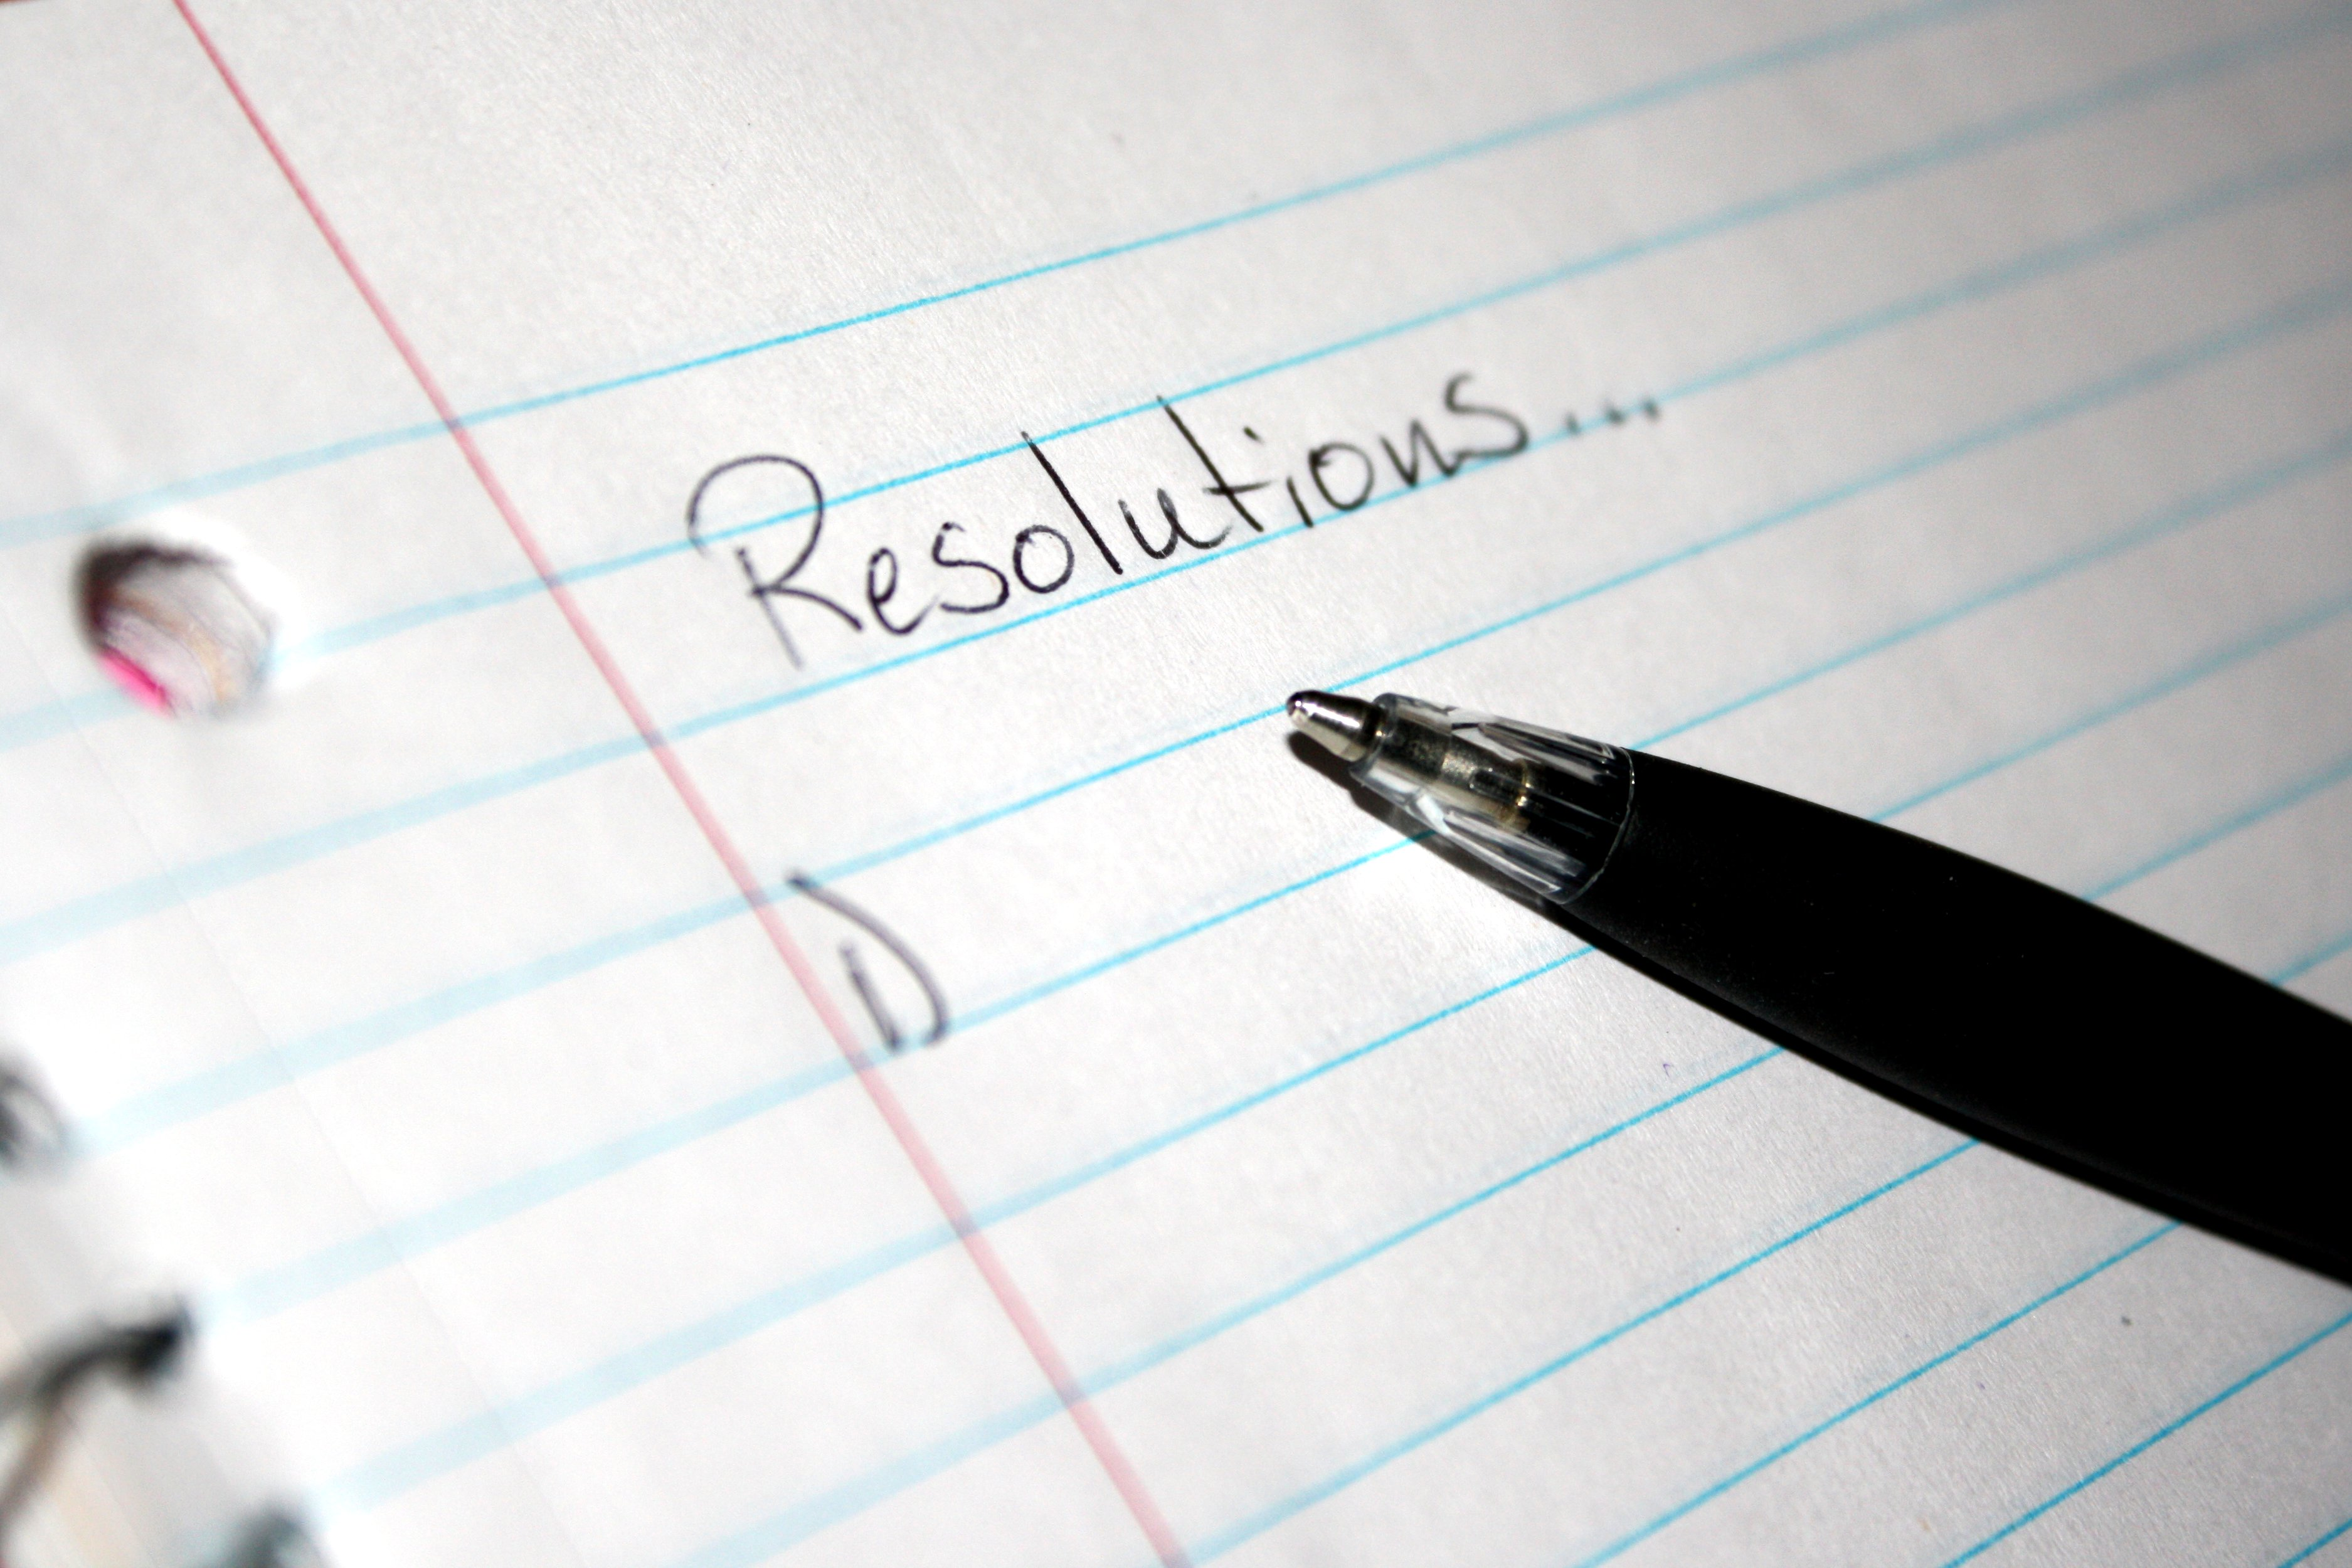 Only One Resolution